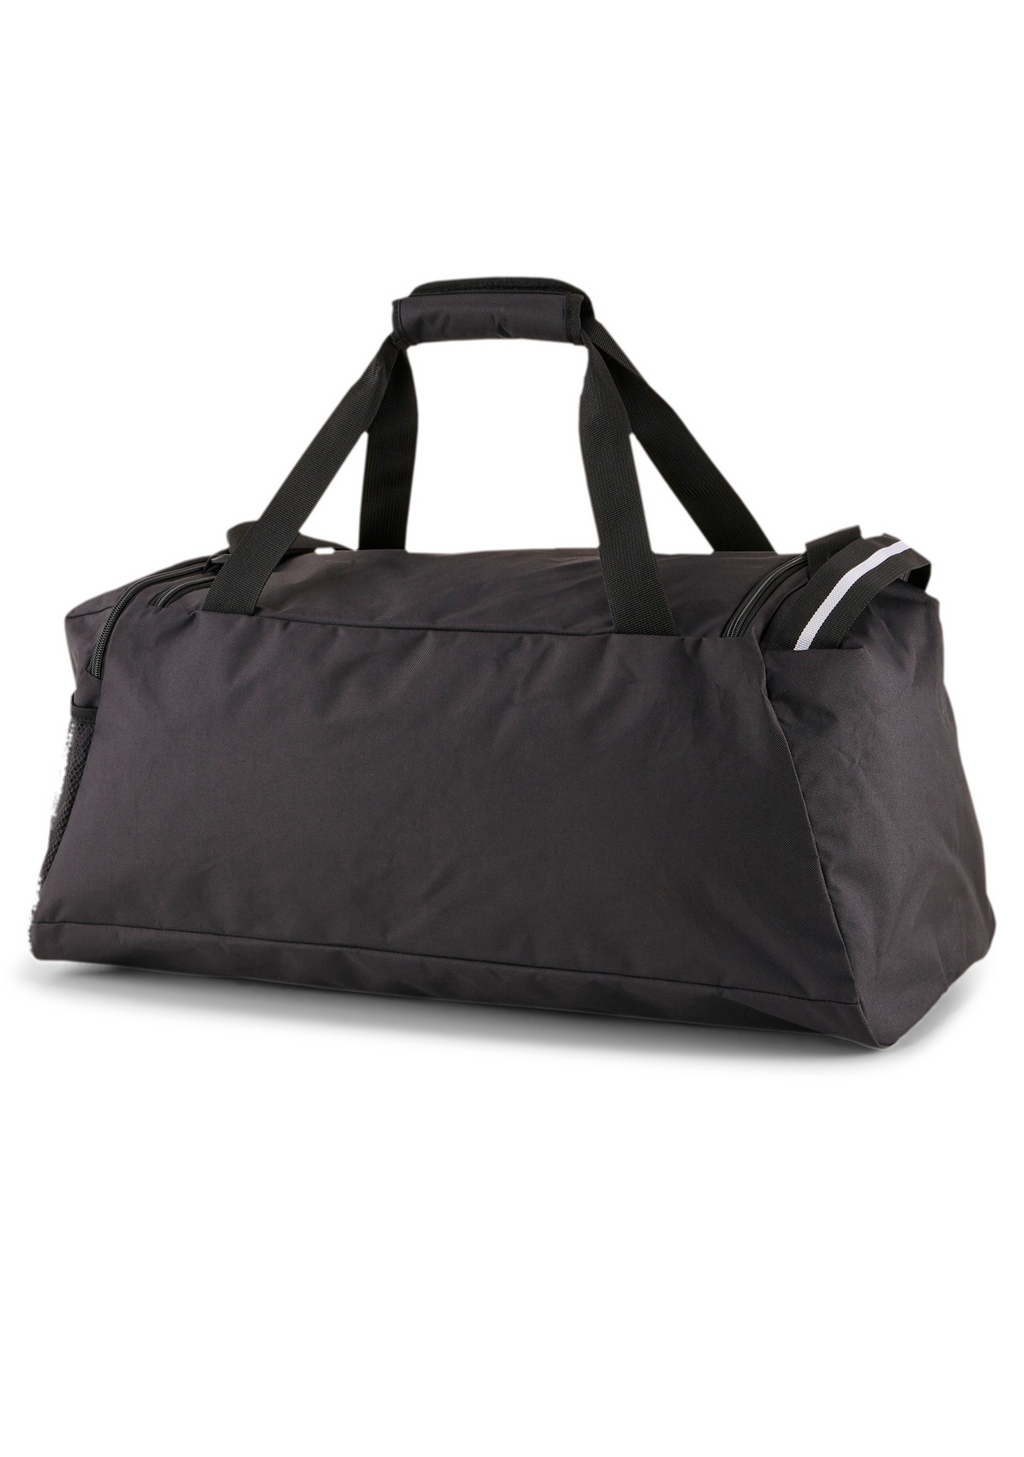 PUMA FUNDAMENTALS LIFESTYLE SPORTS BAG <br> 07728801